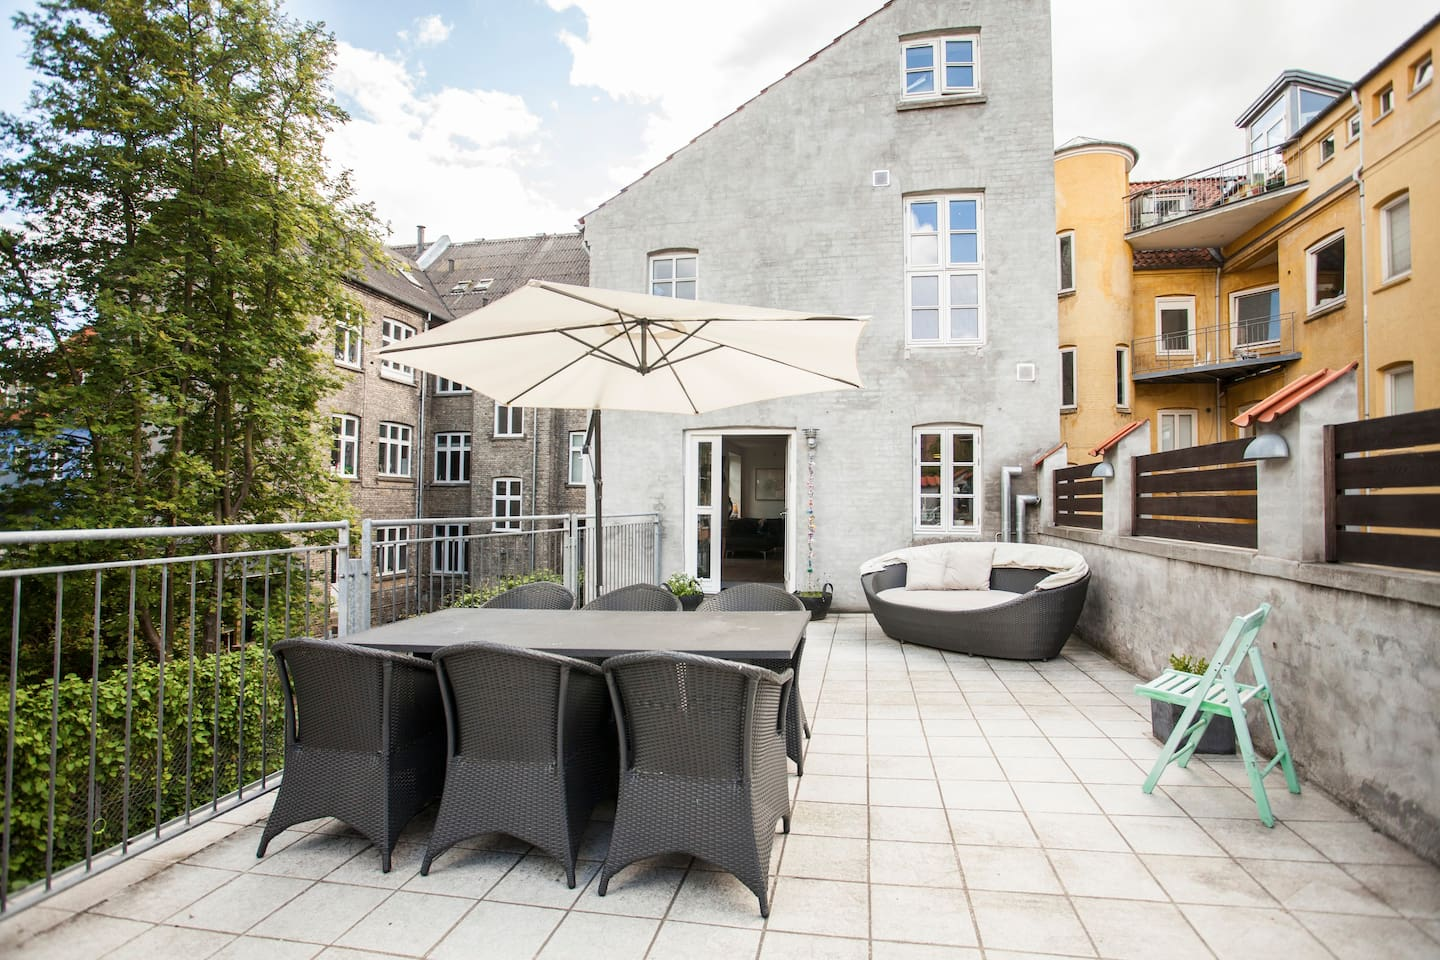 Unique townhouse with roof terrace